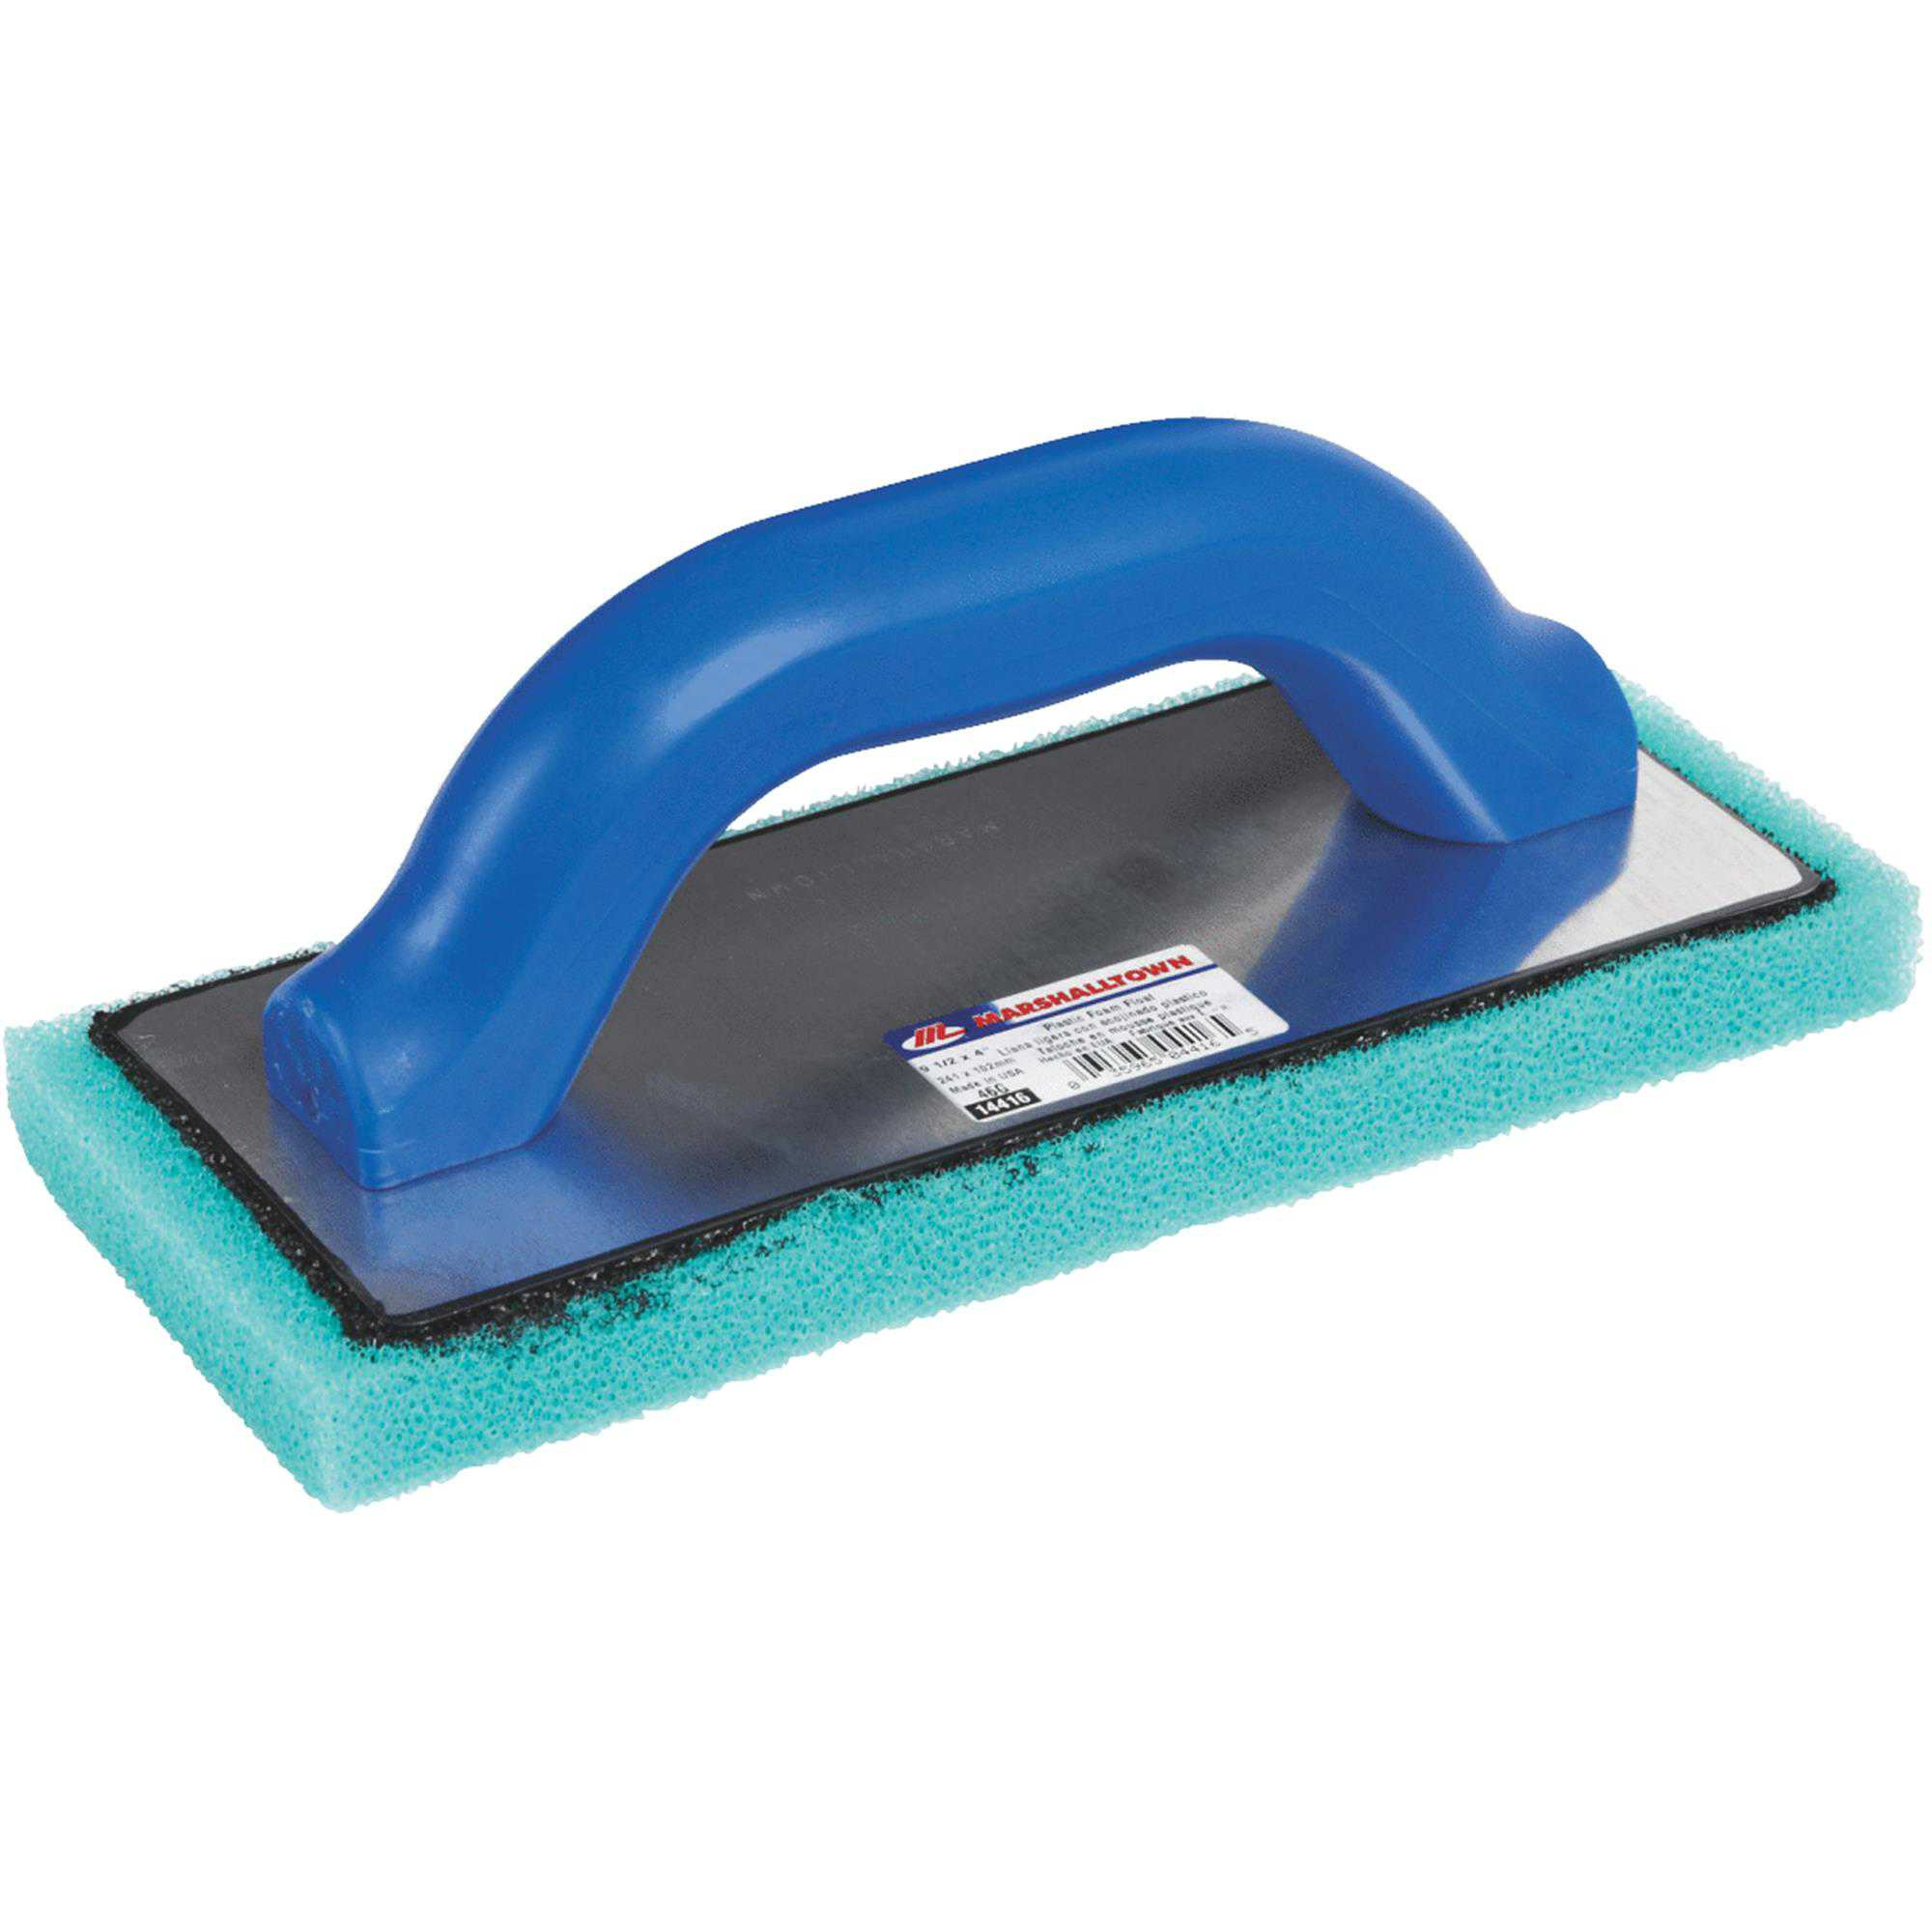 Marshalltown 46G Plastic Foam Float